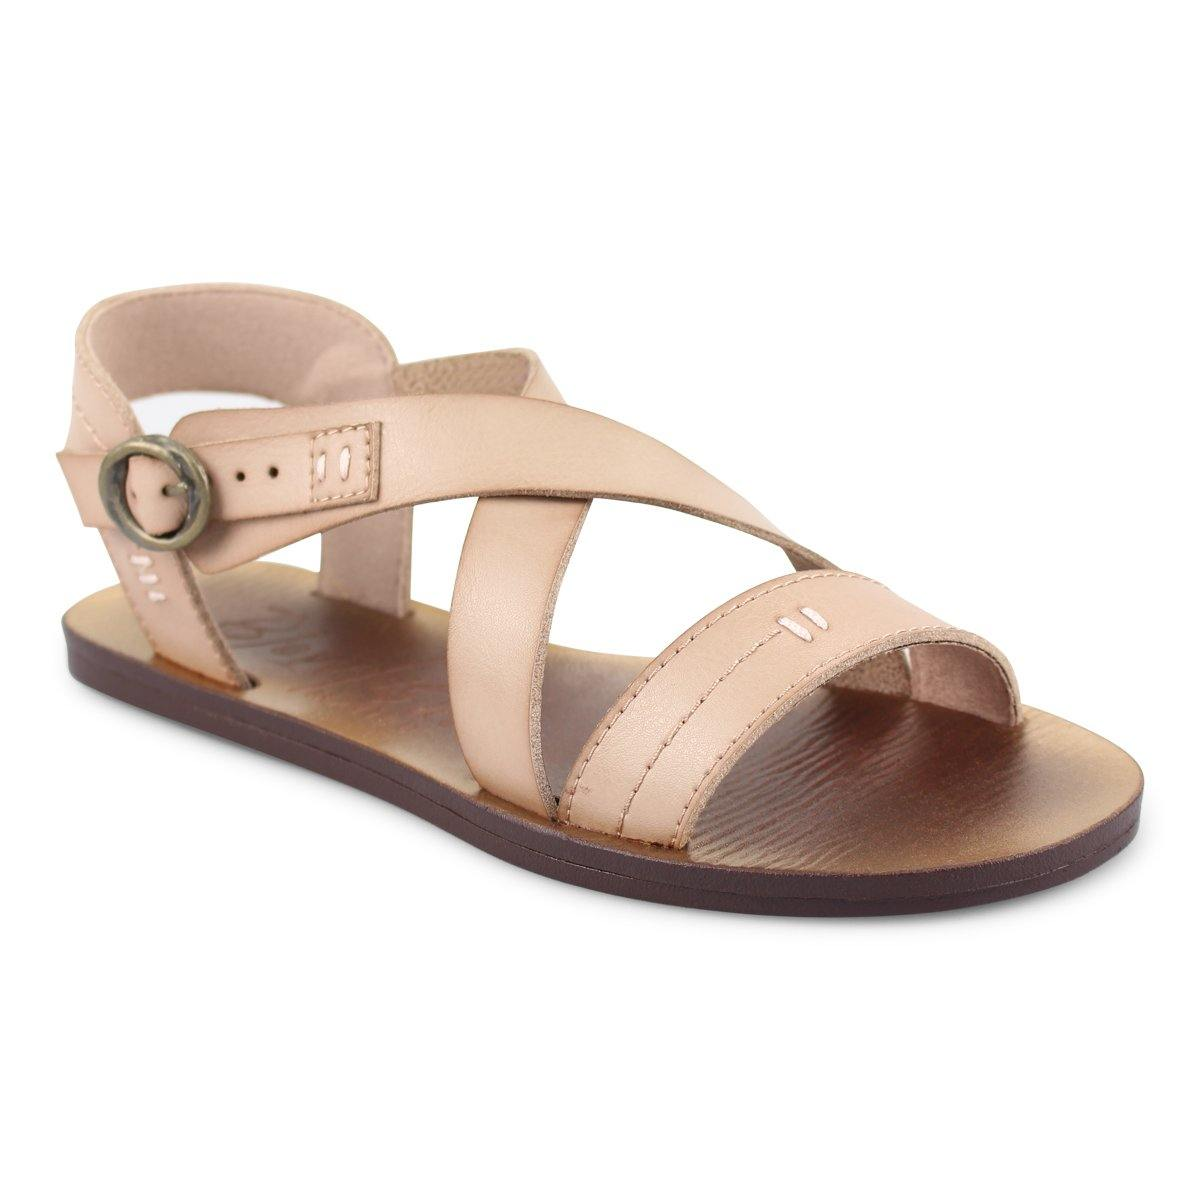 BLOWFISH DRUM SANDAL